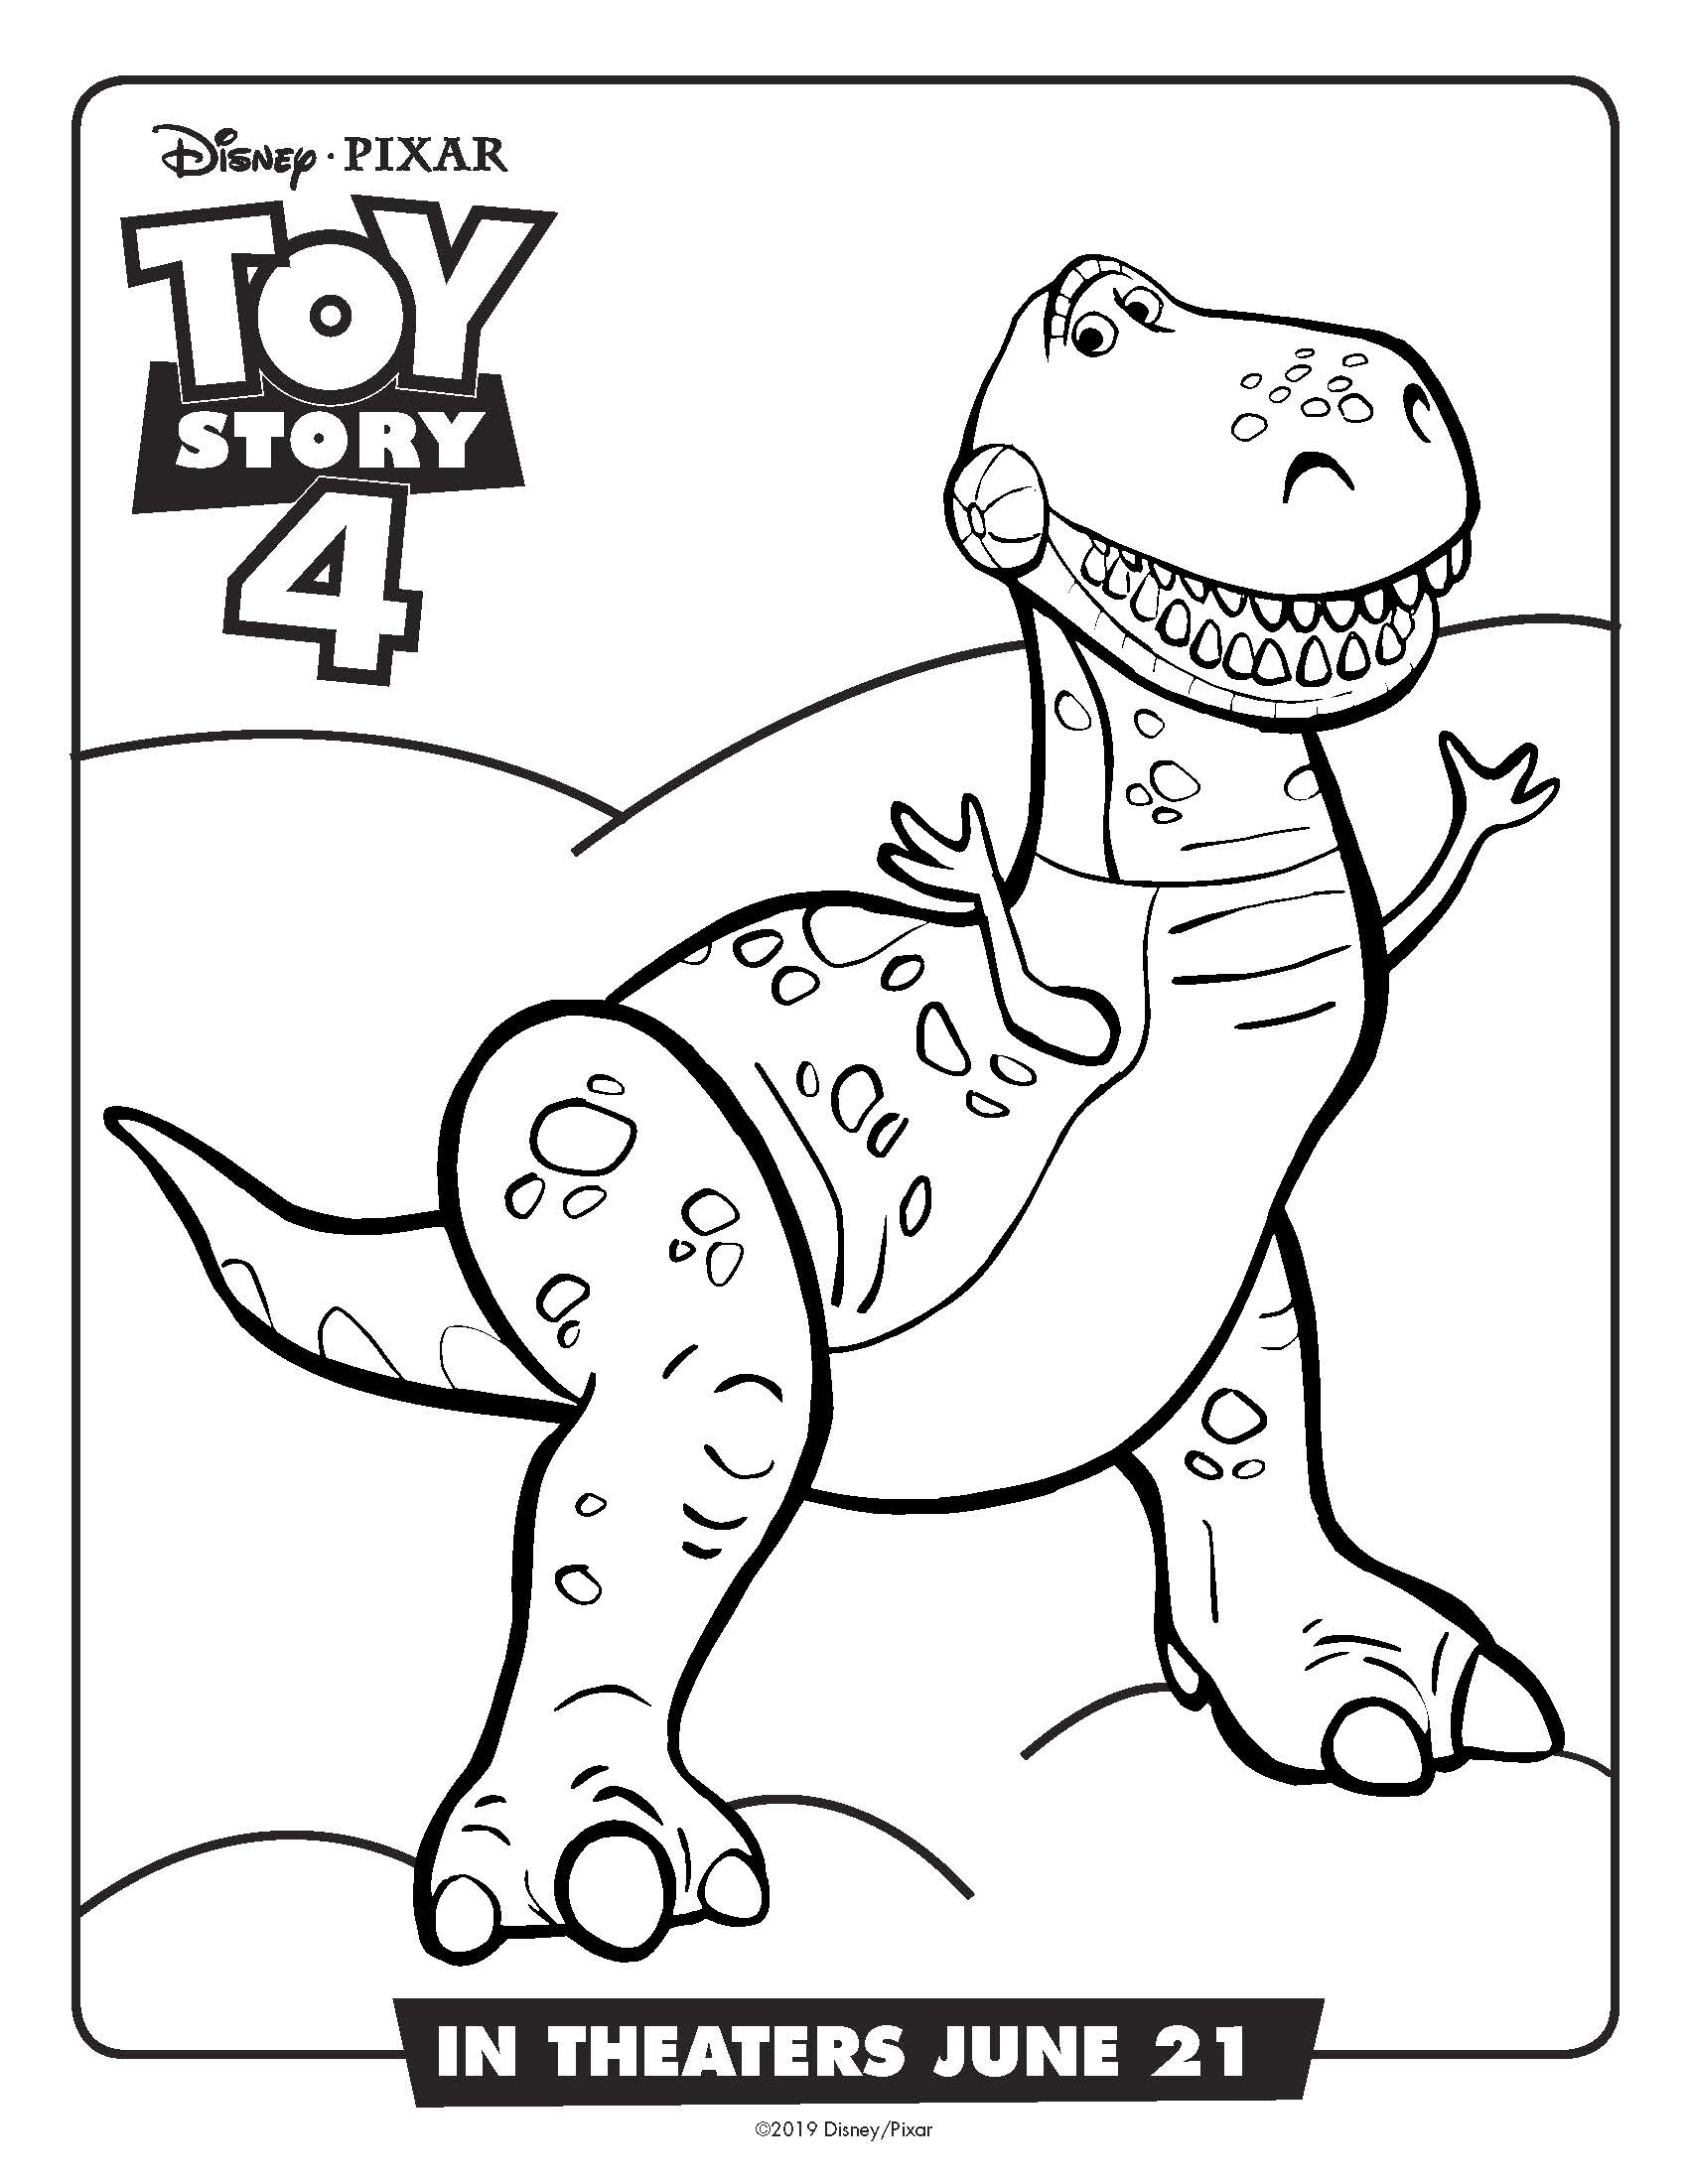 Free Printable Toy Story Rex Coloring Page #dinosaur #toystory #toystory4 #disney #freeprintable #coloringpage